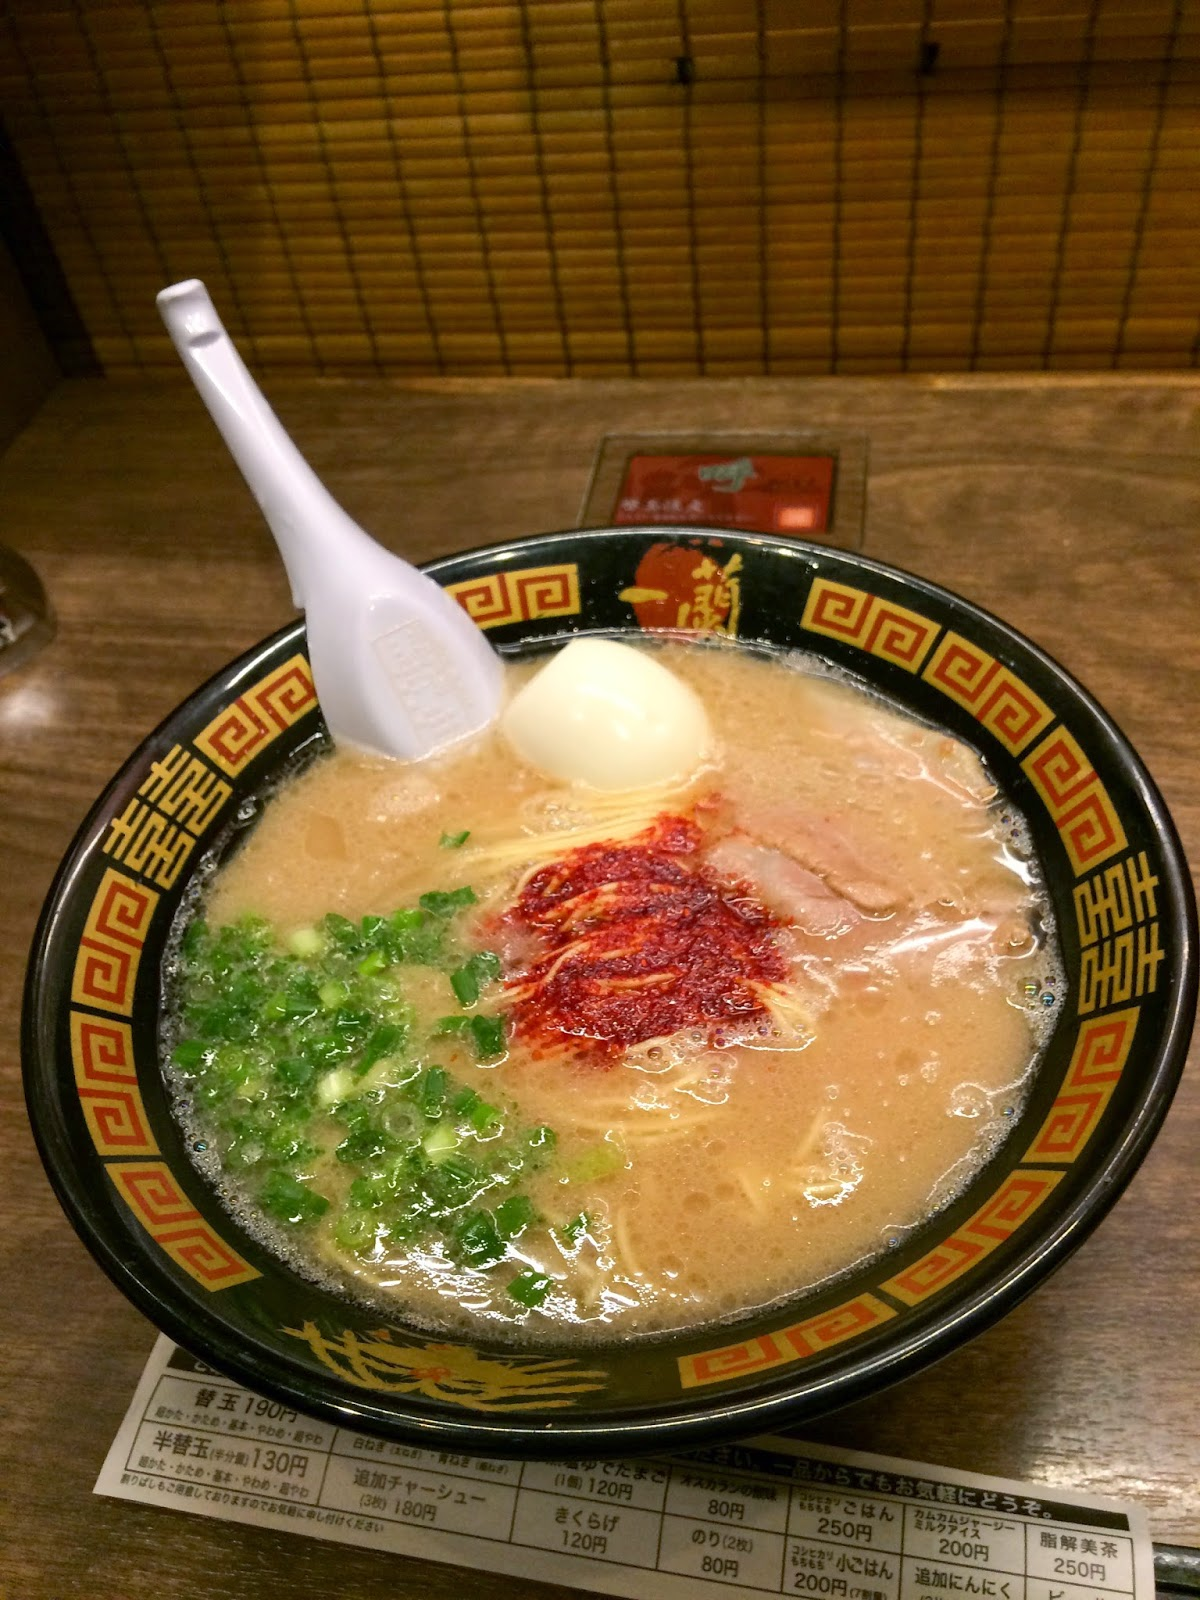 Ichiran Ramen Is A Chain Of Restaurants Famous For Its Tonkatsu And Secret Red Sauce Me It S One The Best I Ve Had